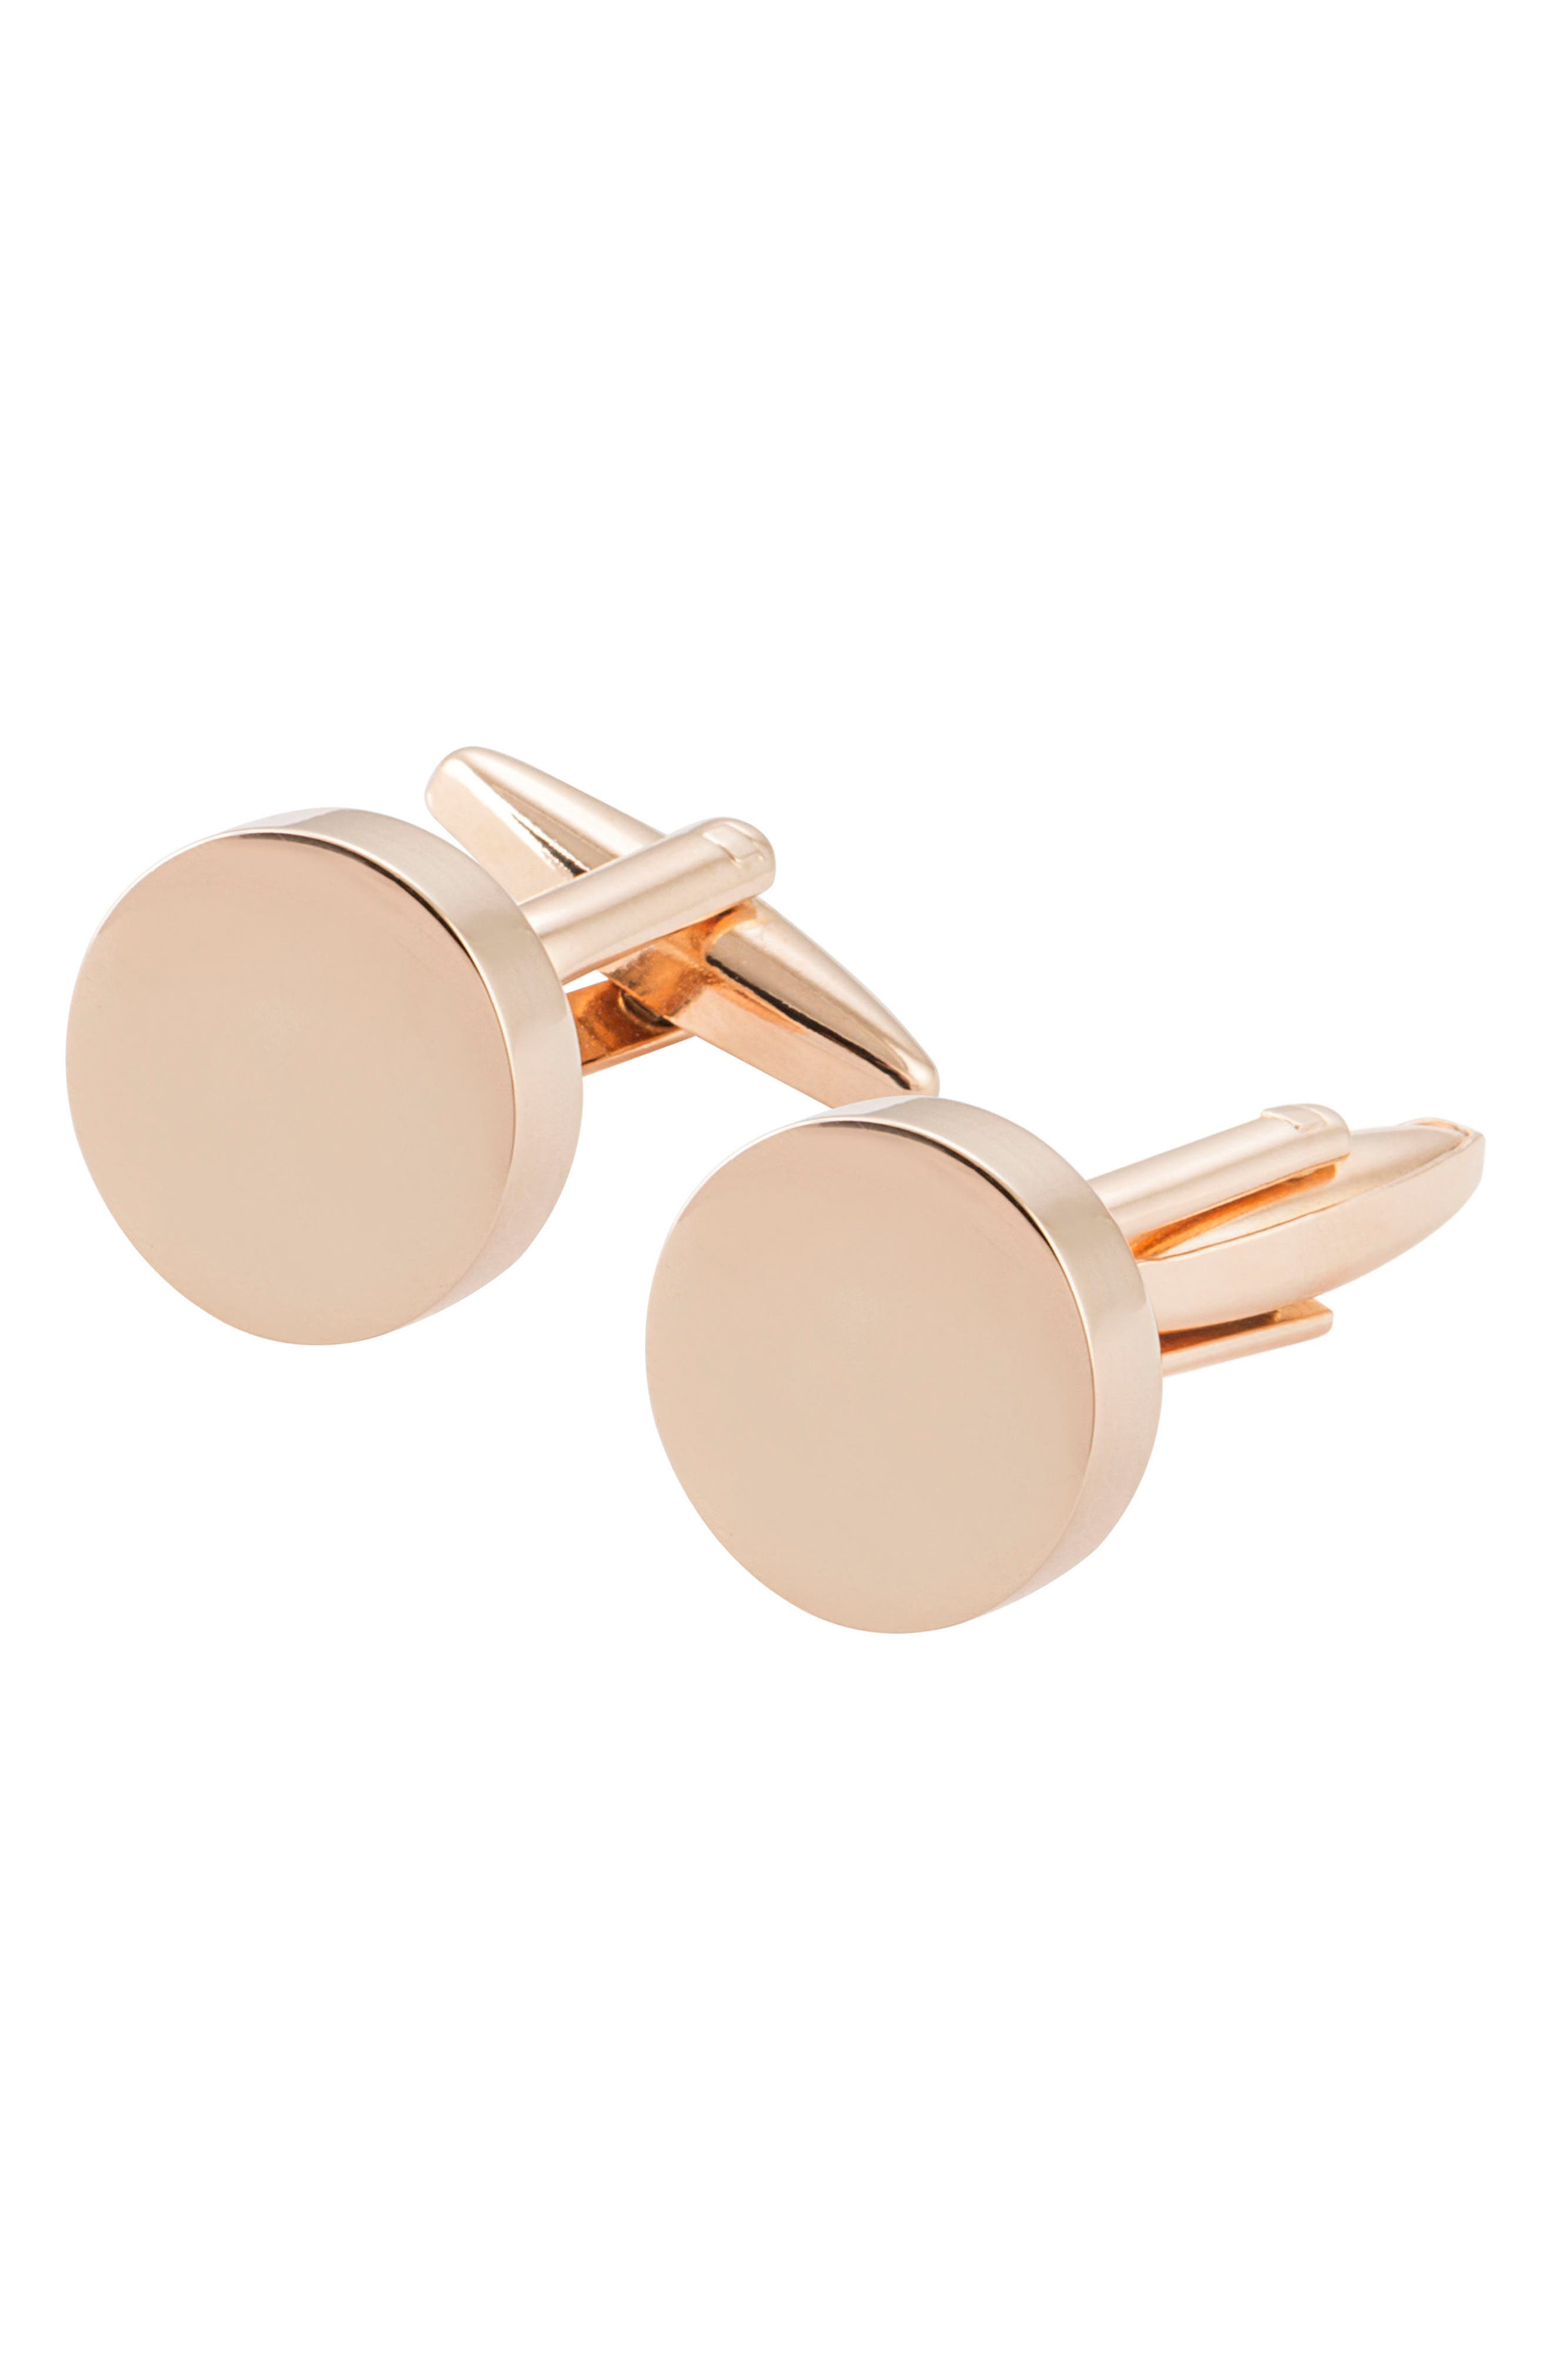 Monogram Cuff Links,                             Main thumbnail 1, color,                             Rose Gold